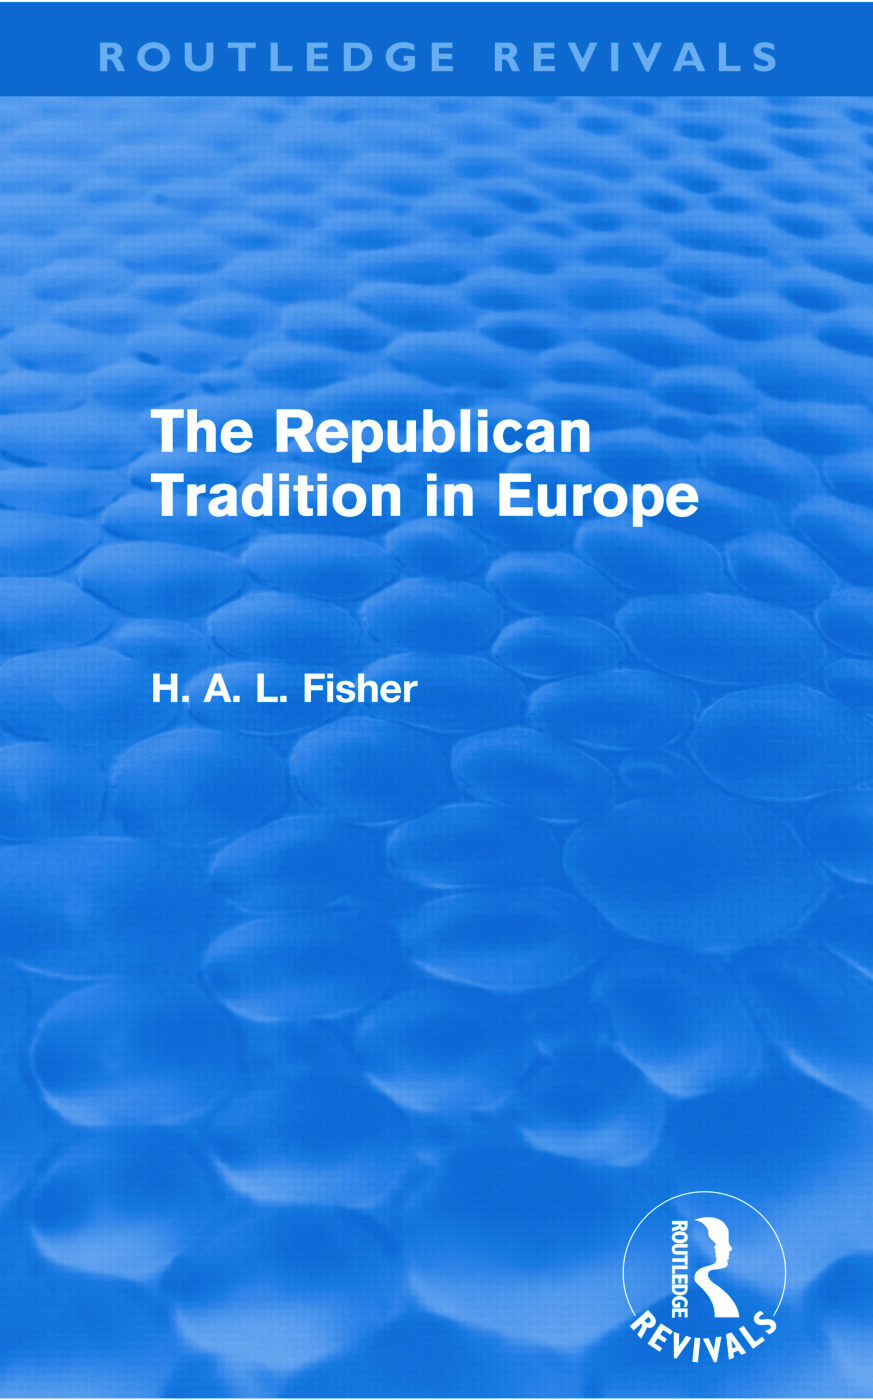 The Republican Tradition in Europe (Routledge Revivals) (Paperback) book cover